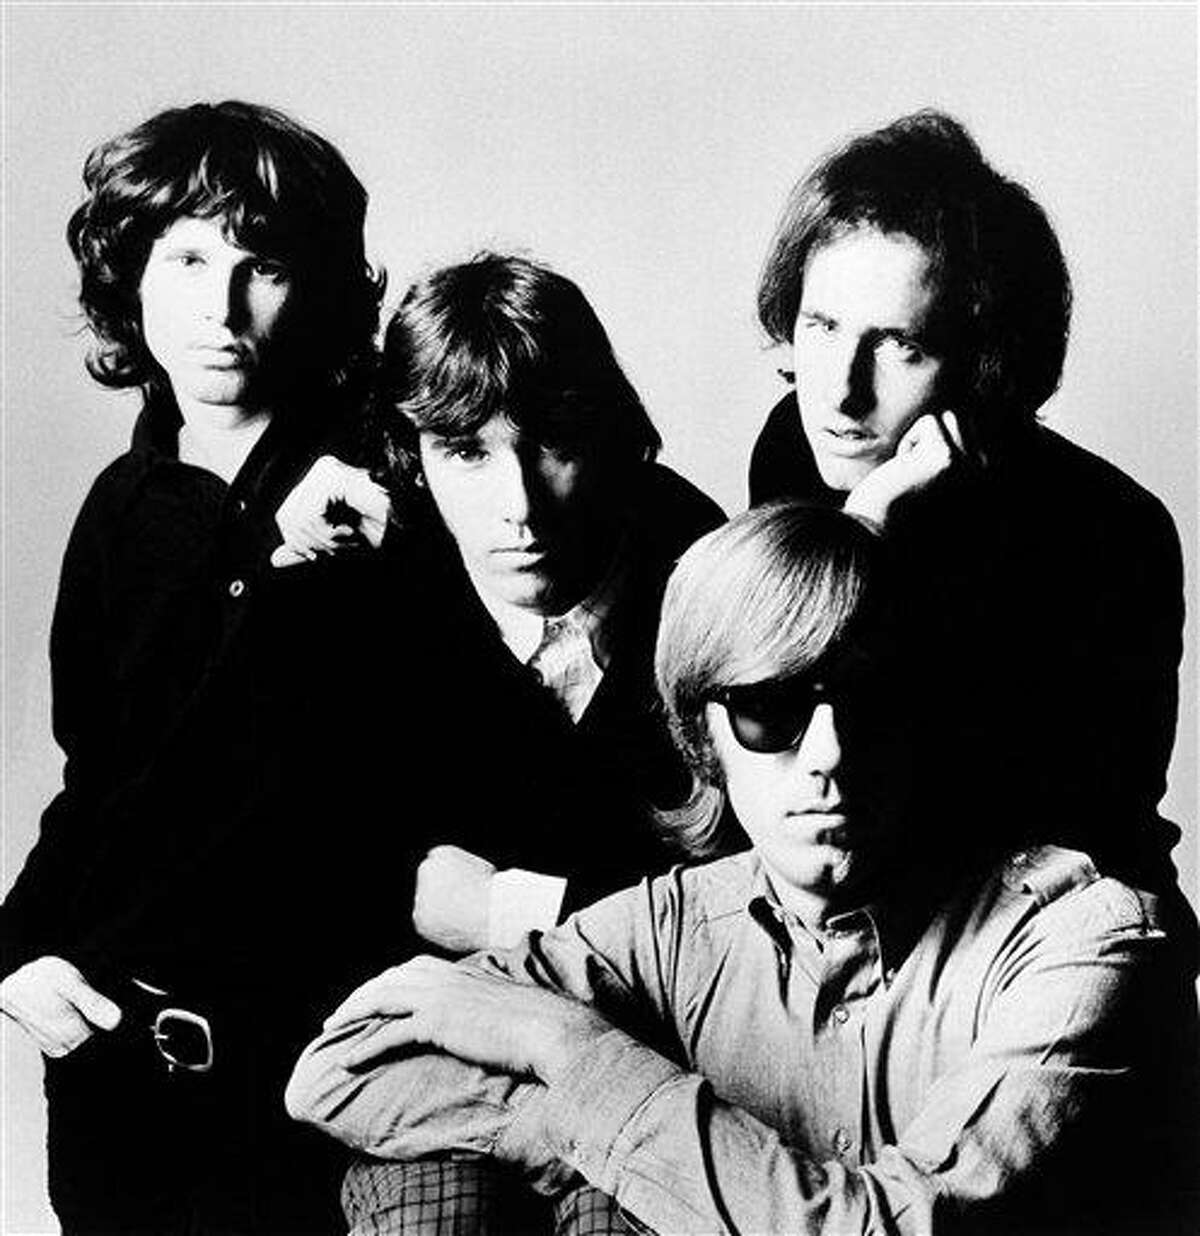 Members of The Doors, from left to right, Jim Morrison, John Densmore, Robby Krieger and Ray Manzarek in an undated photo. Outgoing Florida Gov. Charlie Crist Crist told the St. Petersburg Times Tuesday Nov. 16, 2010 he is looking to pardoning the long-dead rocker Jim Morrison who was convicted of exposing himself at a raucous 1969 concert in Miami.